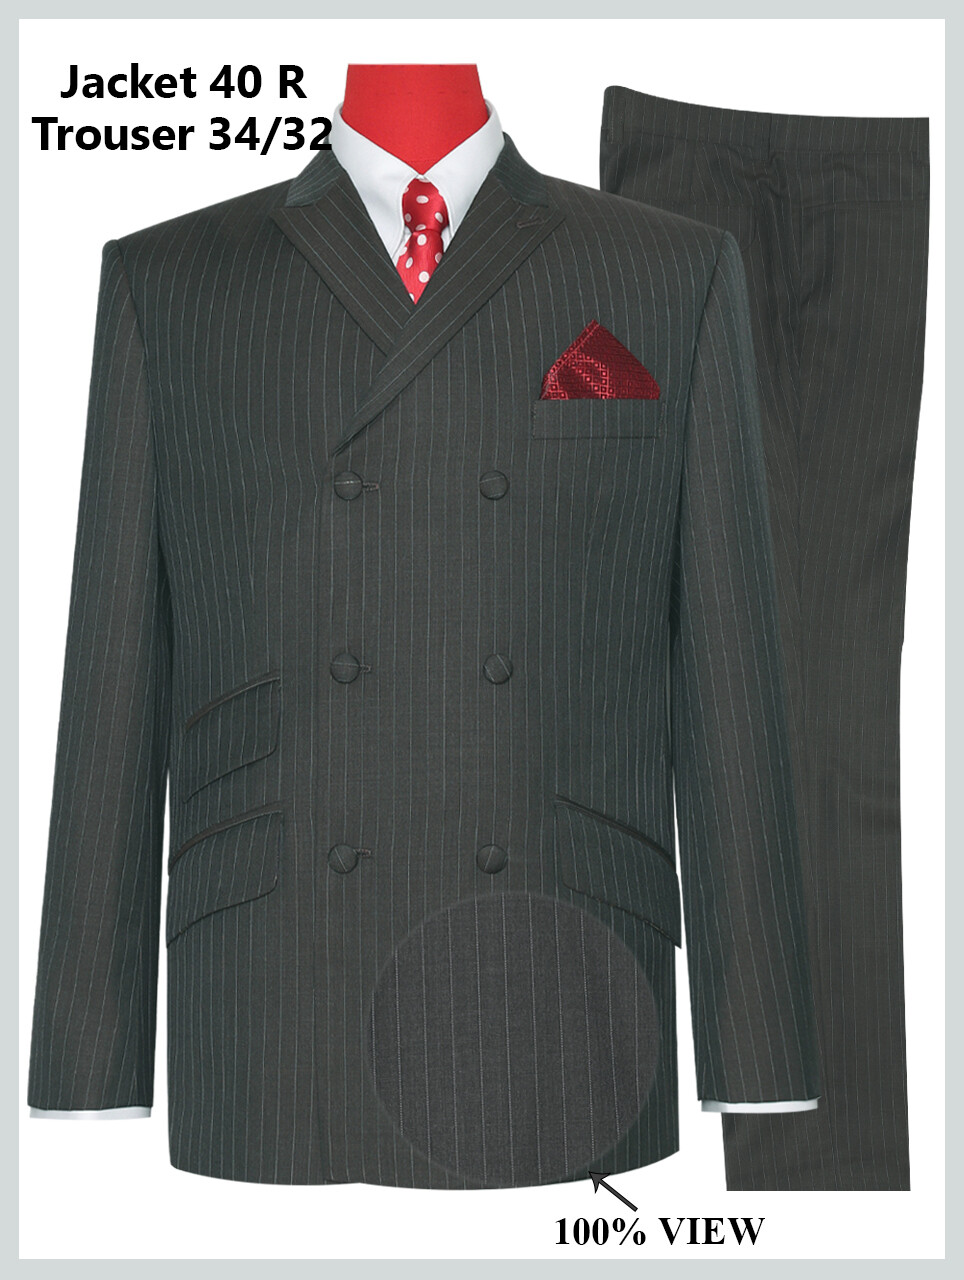 Double Breasted Pale Brown Striped Suit Jacket 40R & 34/32 Trouser